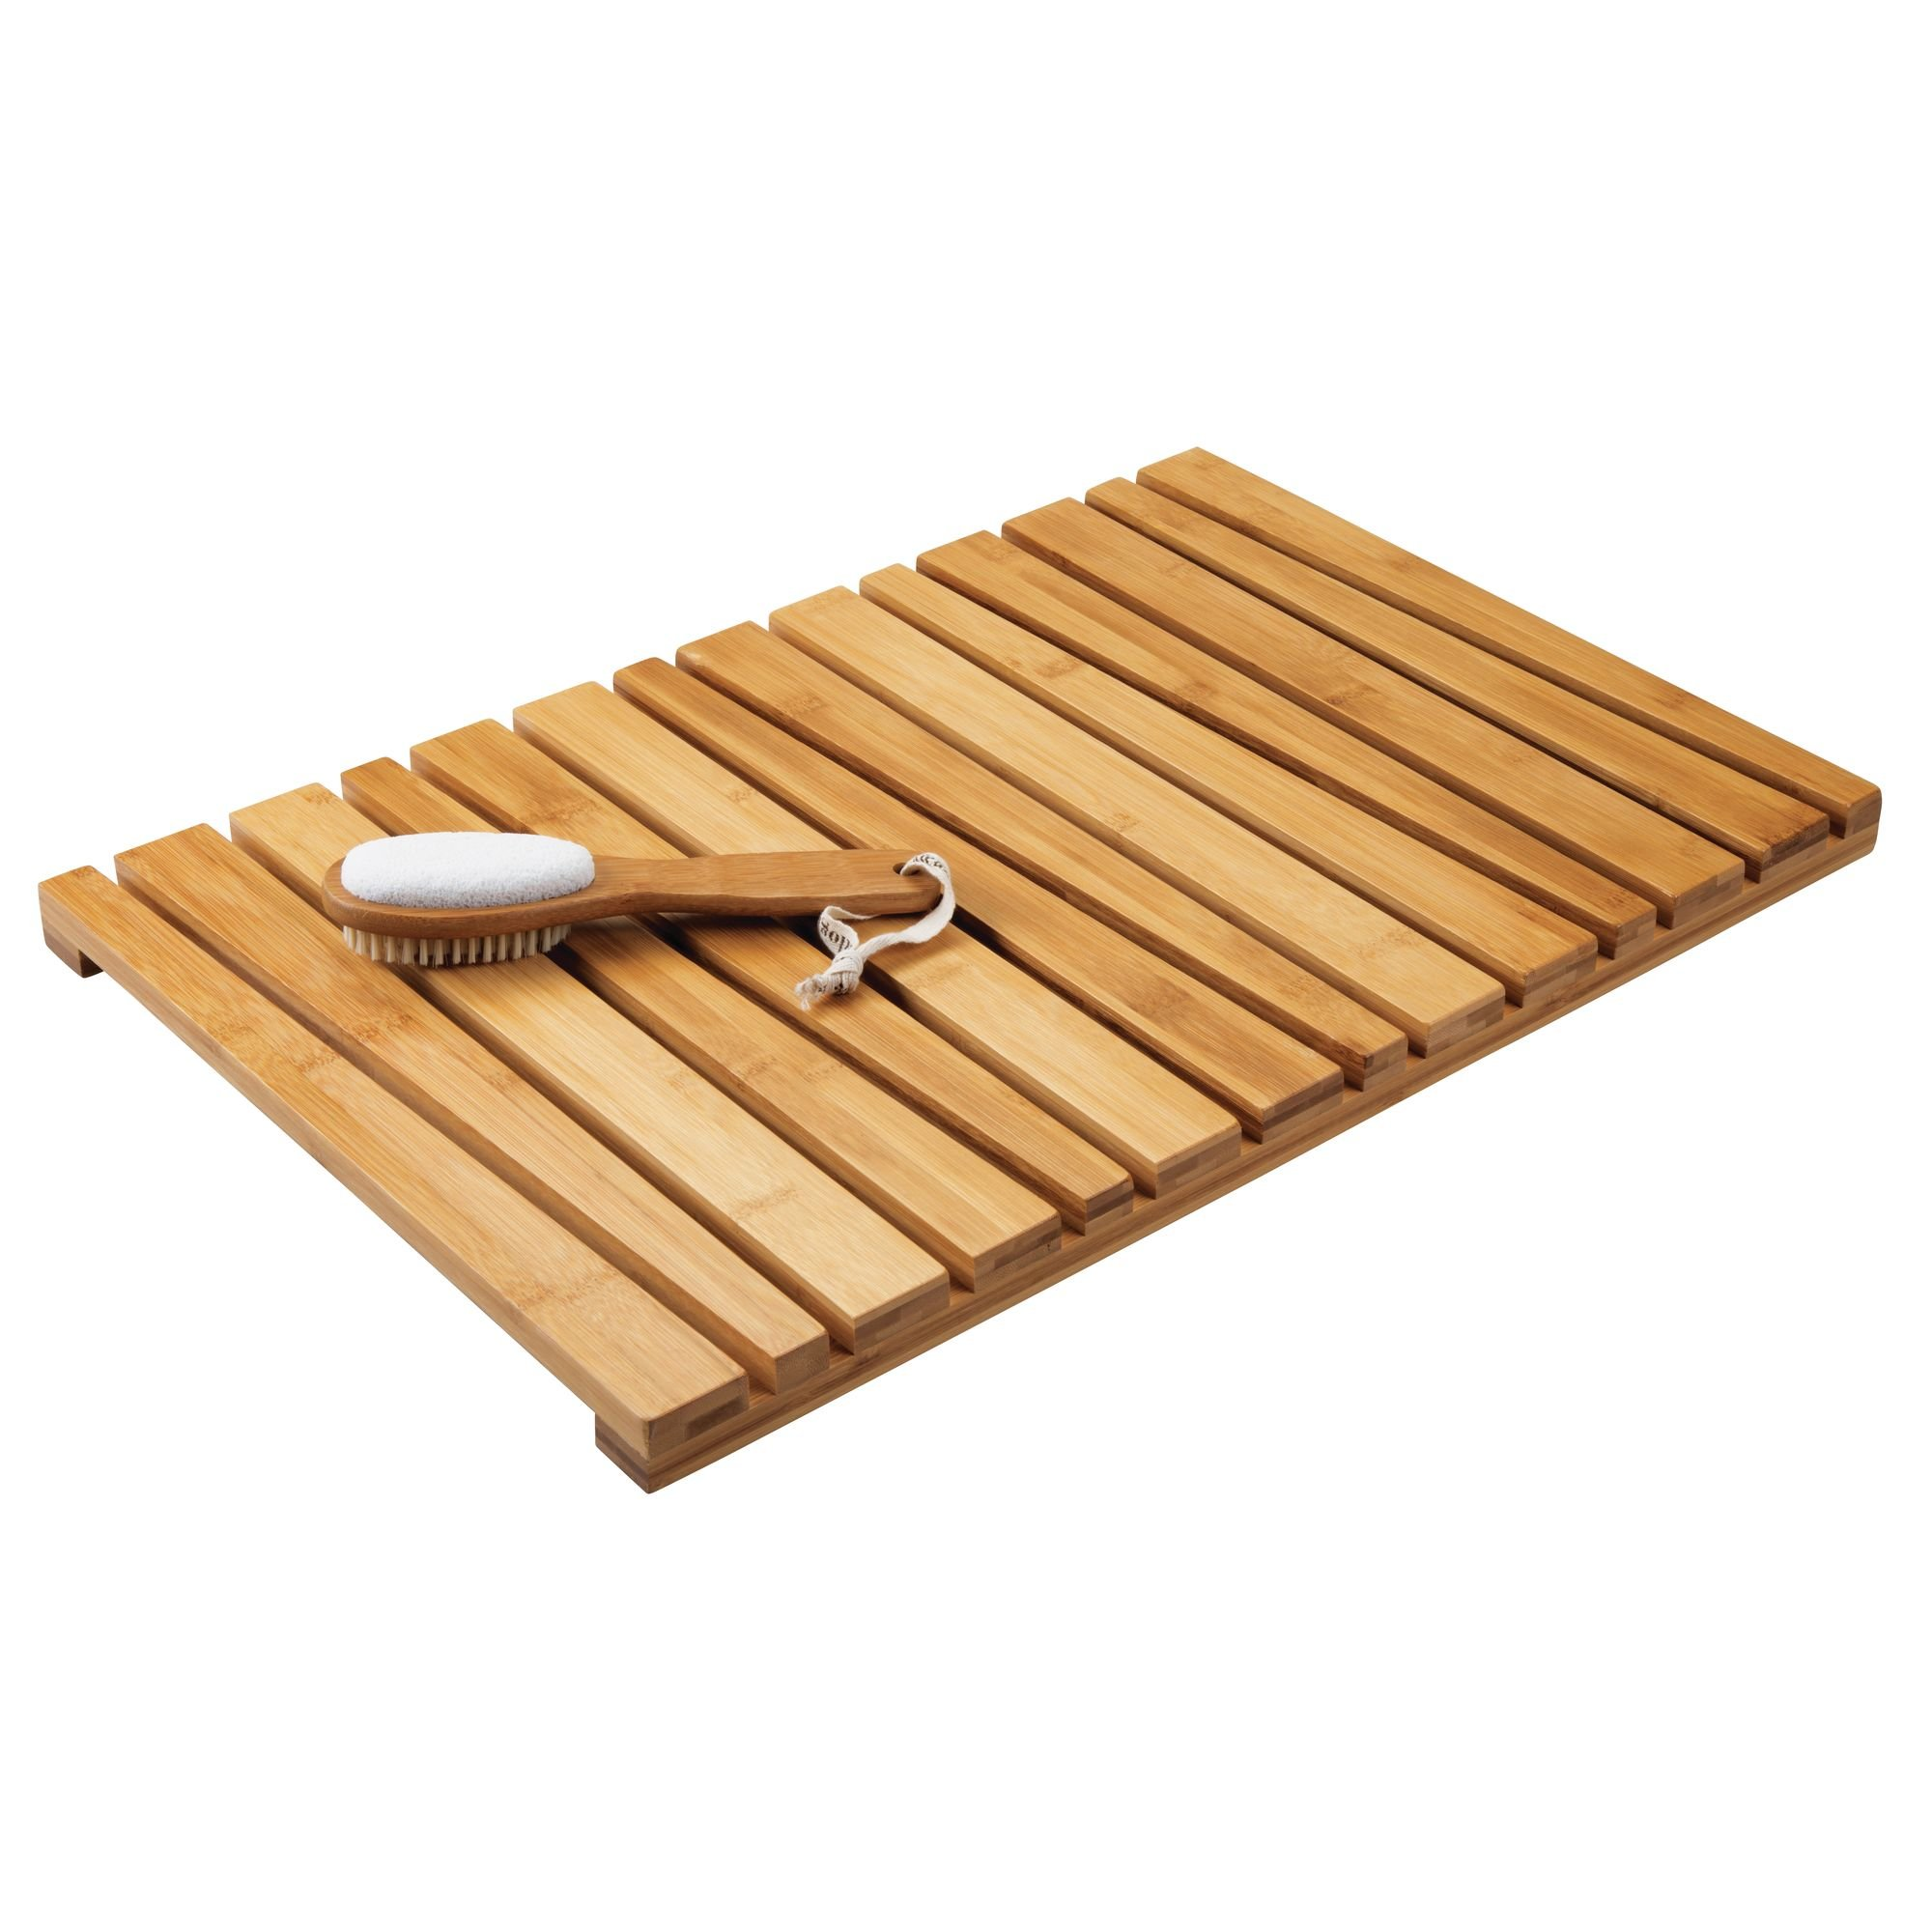 mDesign Natural Bamboo Non-Slip Rectangular Spa Bath Mat - for Bathroom Showers, Bathtubs, Floors - Angled Slat Design, Eco-Friendly - Indoor and Outdoor use - 100% Bamboo Wood, Natural Light Wood